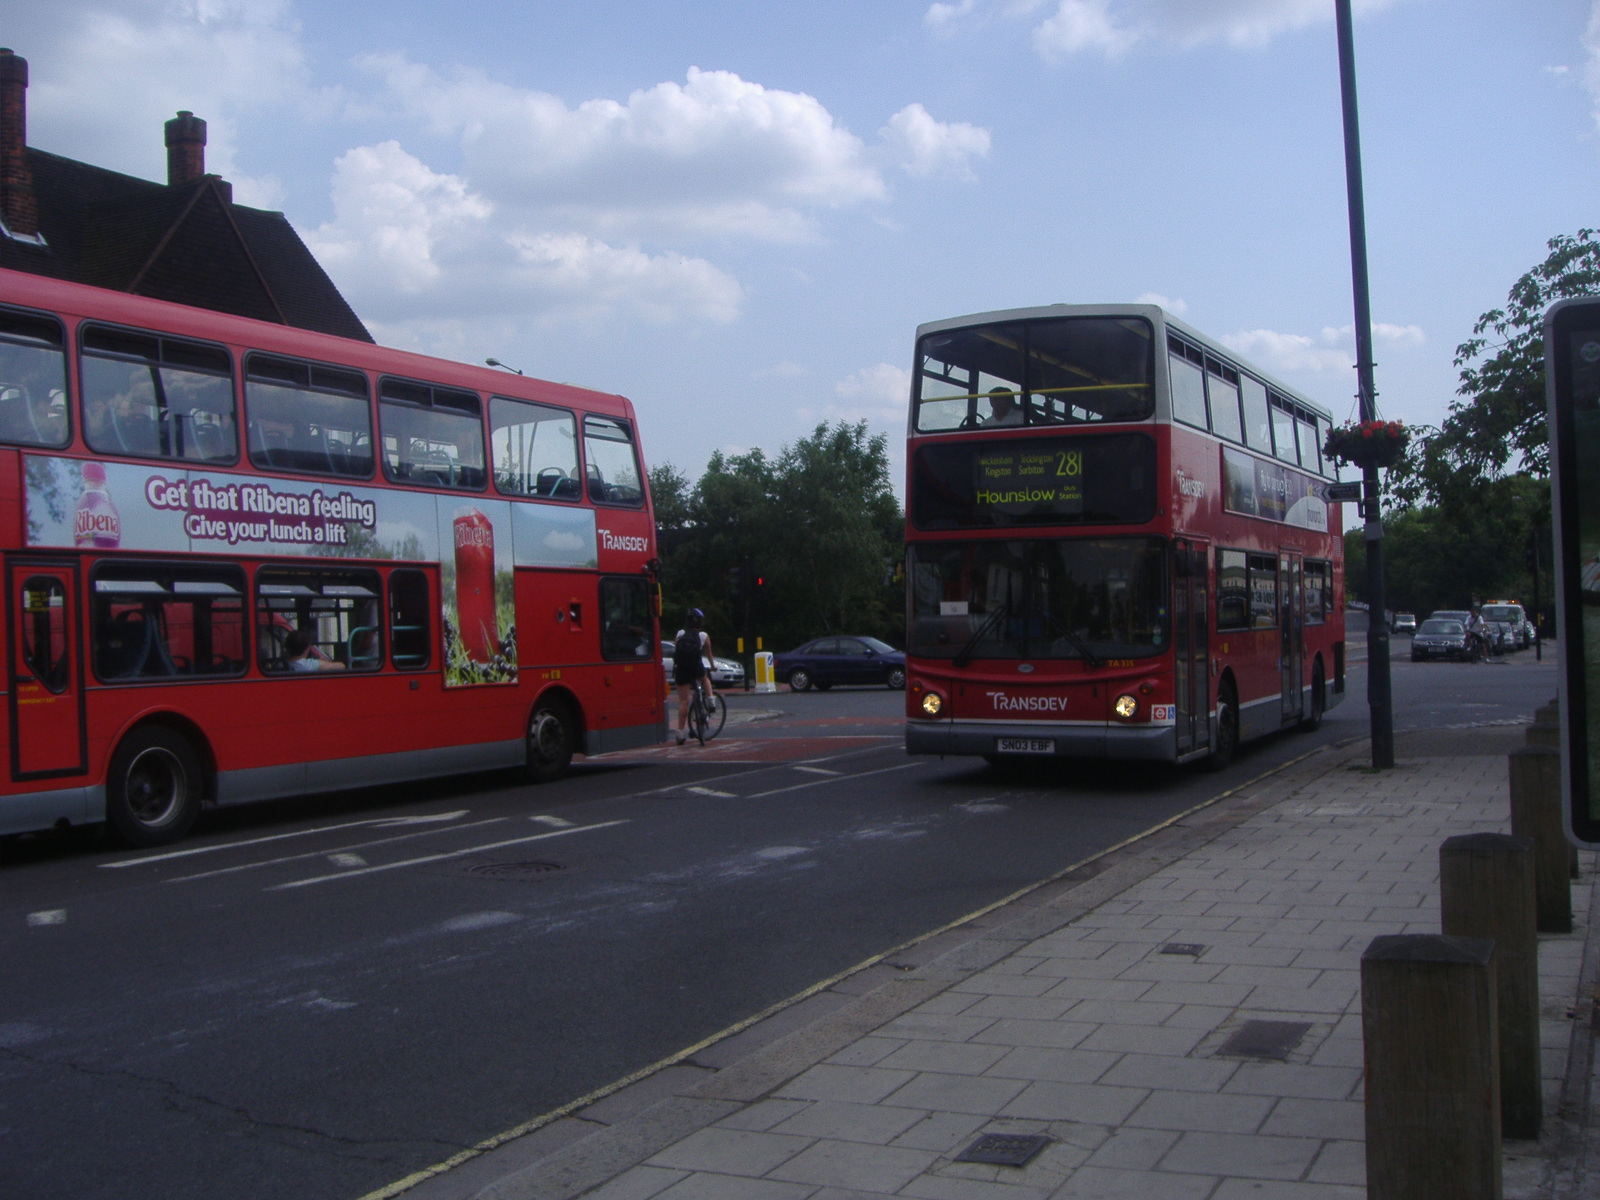 file:london buses route 281 fulwell - wikimedia commons